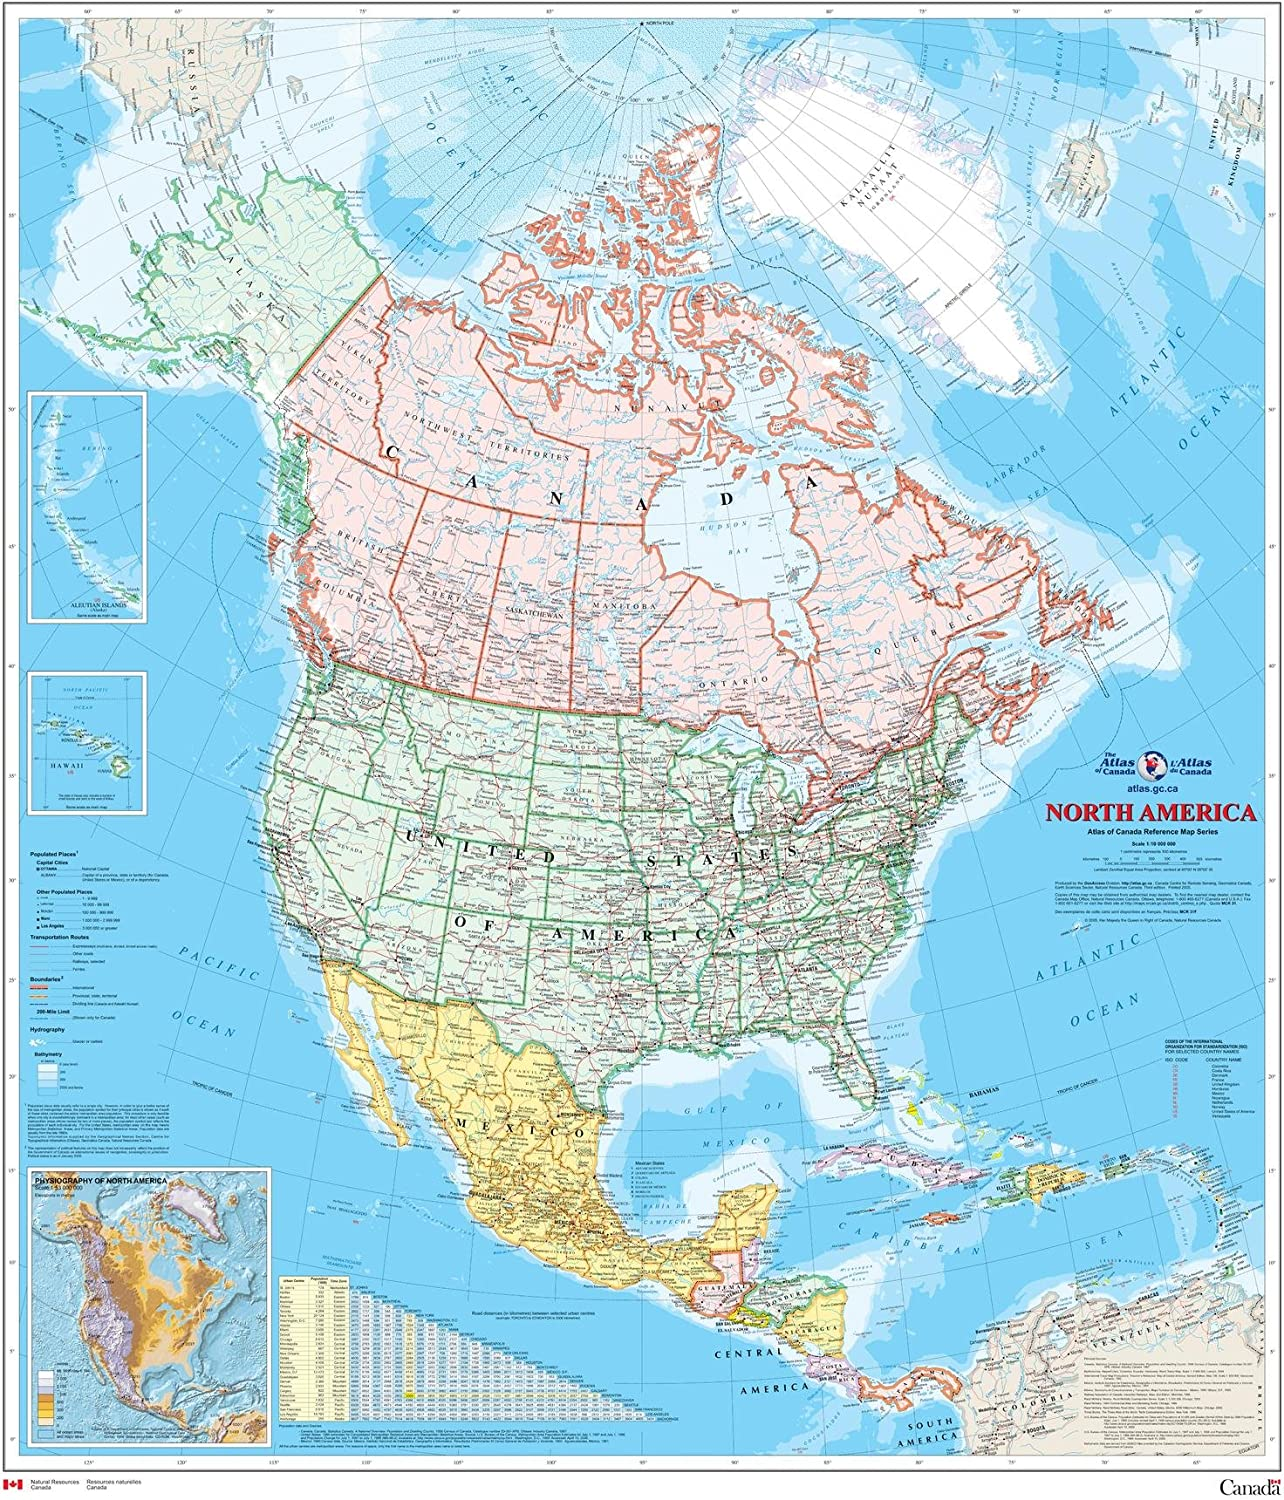 Map Of America And Canada Amazon.: North America Wall Map   Atlas of Canada   34